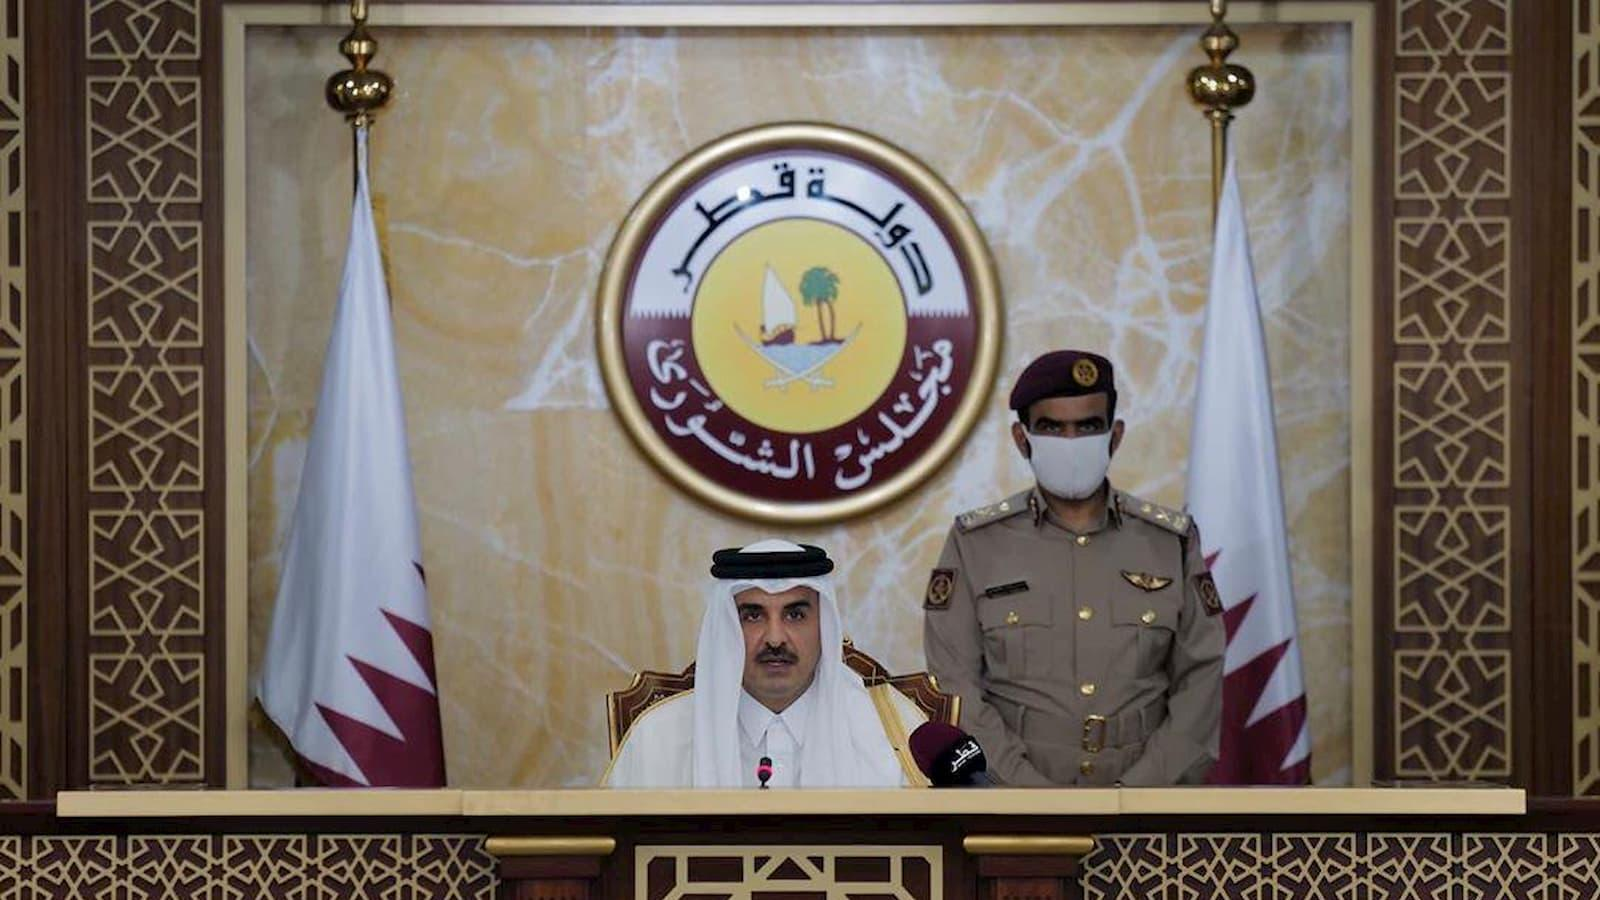 HH the Amir inaugurates 49th Ordinary Session of Shura Council